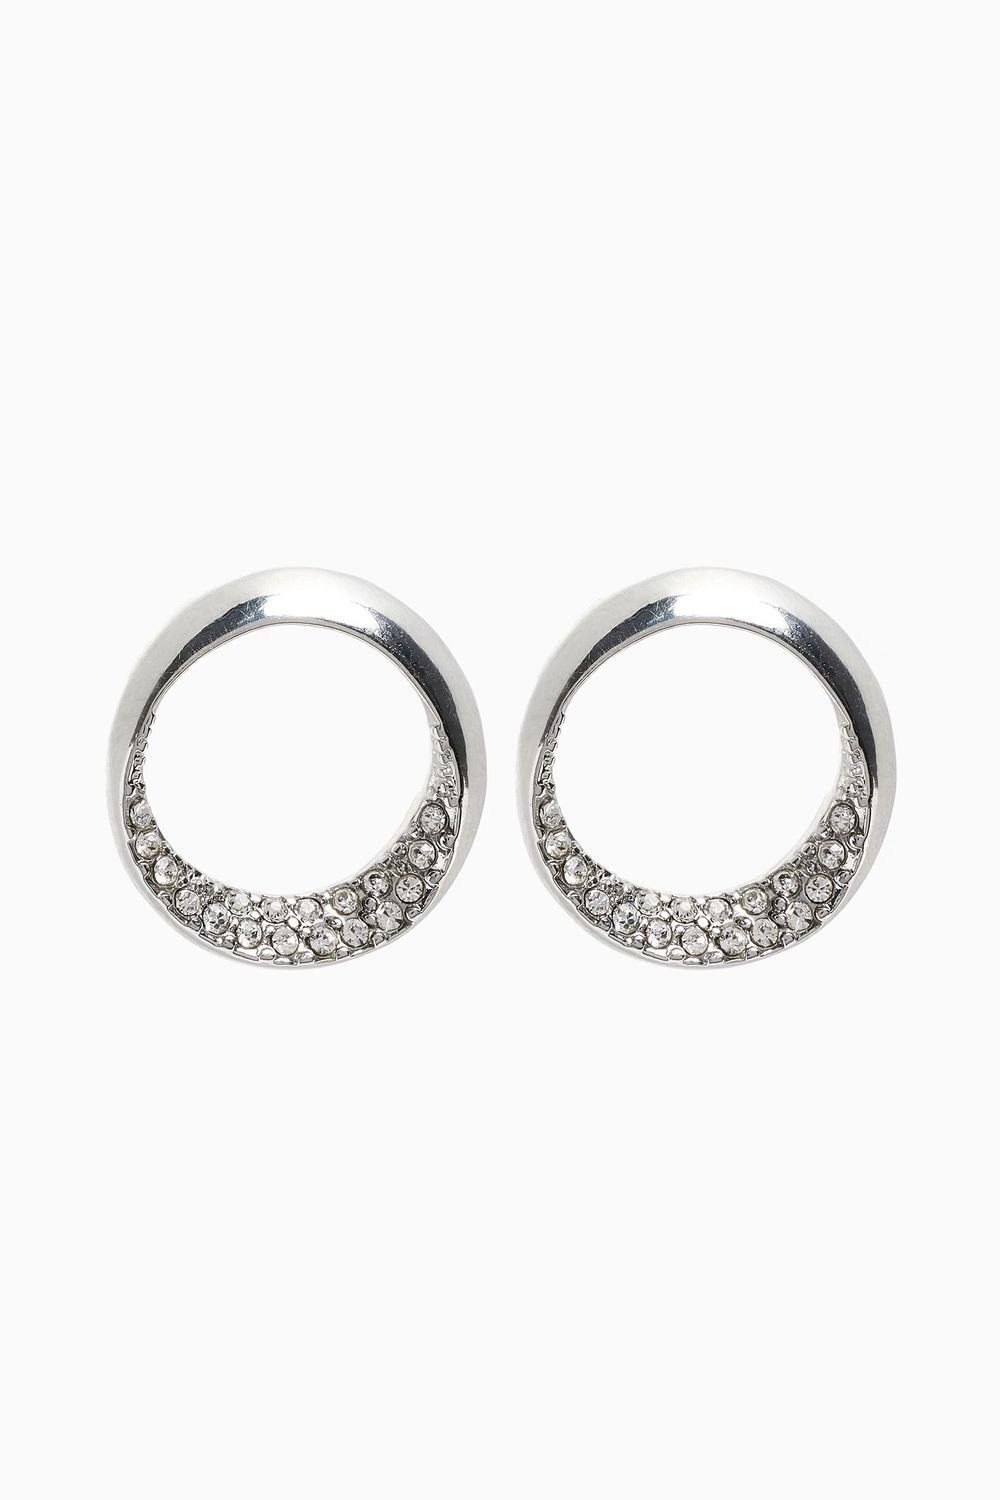 products jewelry strut circle studs silver open stud earrings